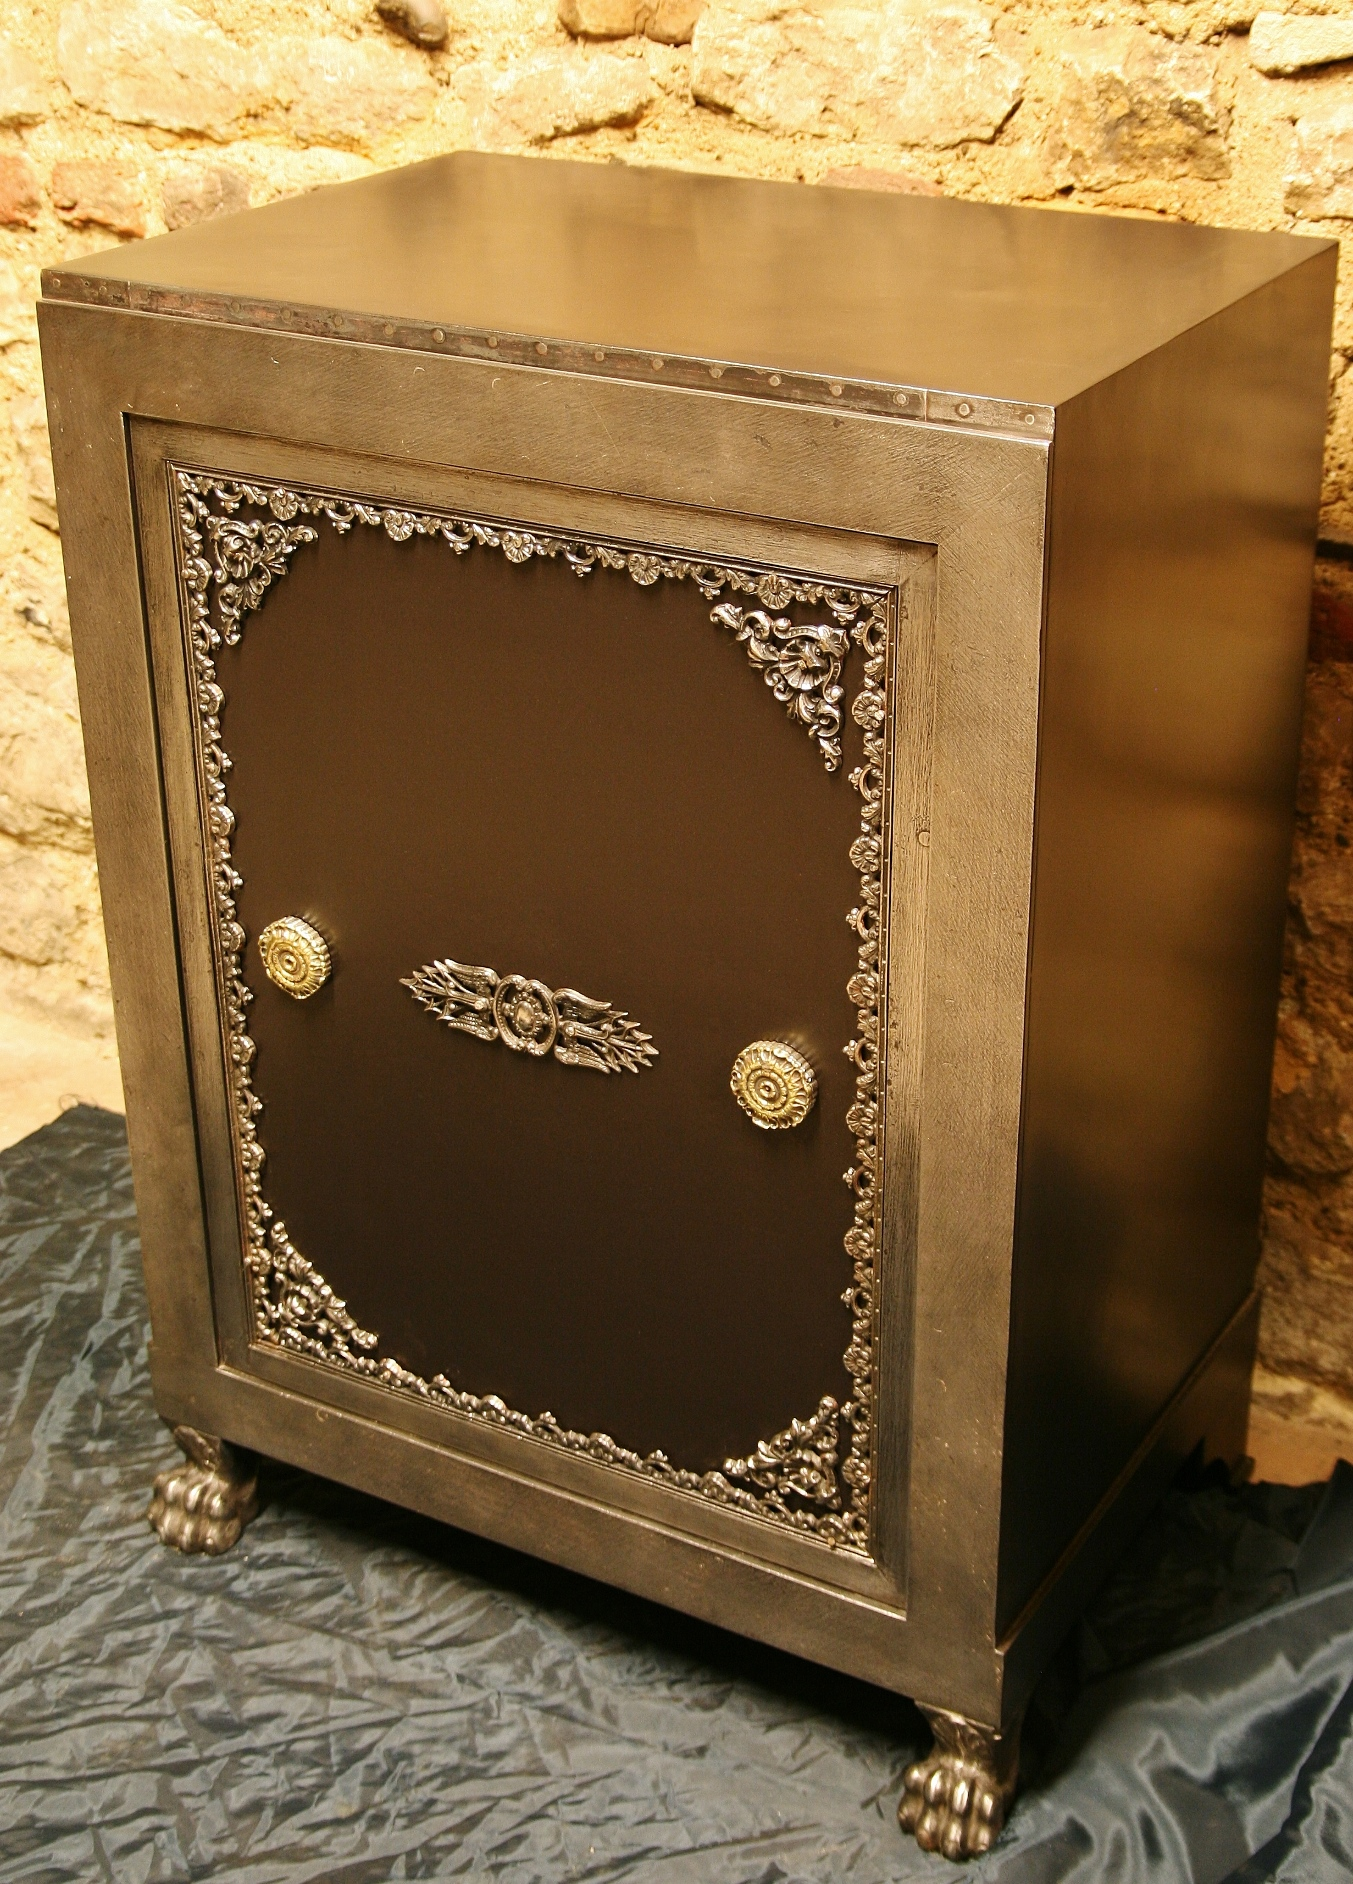 antica cassaforte, antiker Tresor, antique safe